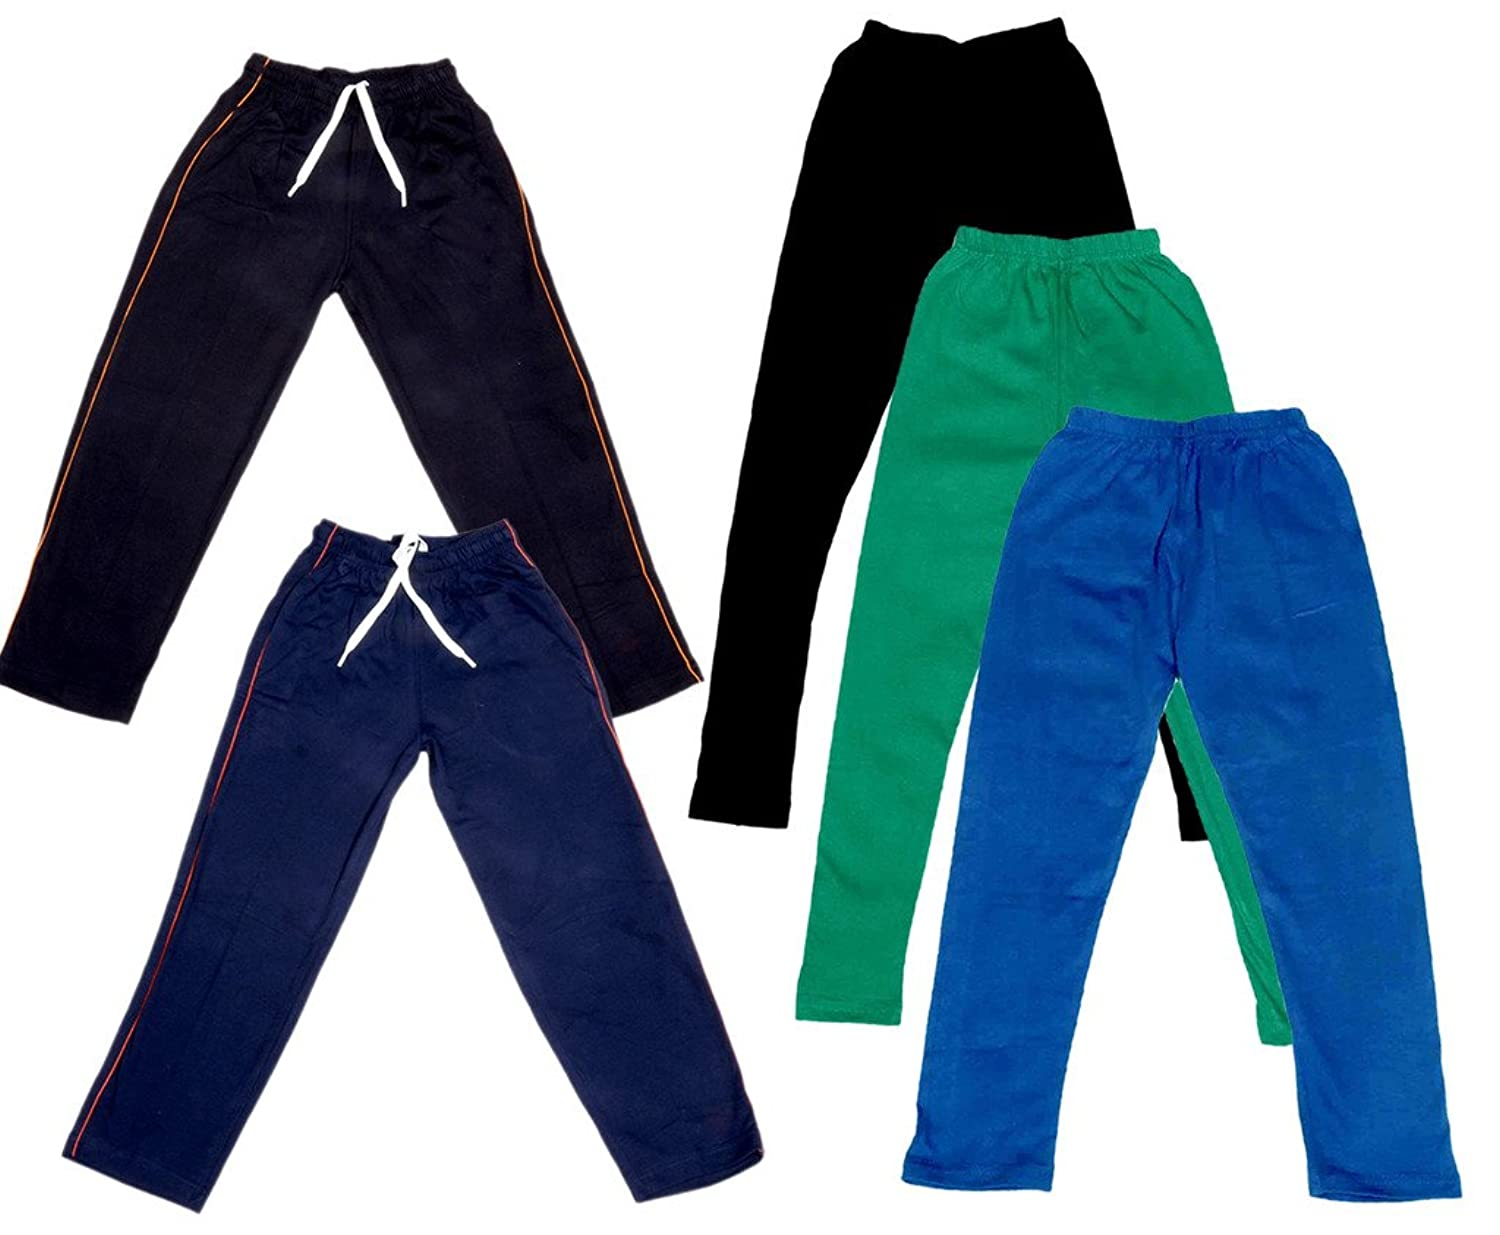 Pack Of 2 Indistar Girls Premium Cotton Full Length Lower//Track Pants//Pyjamas With 2 Open Pockets